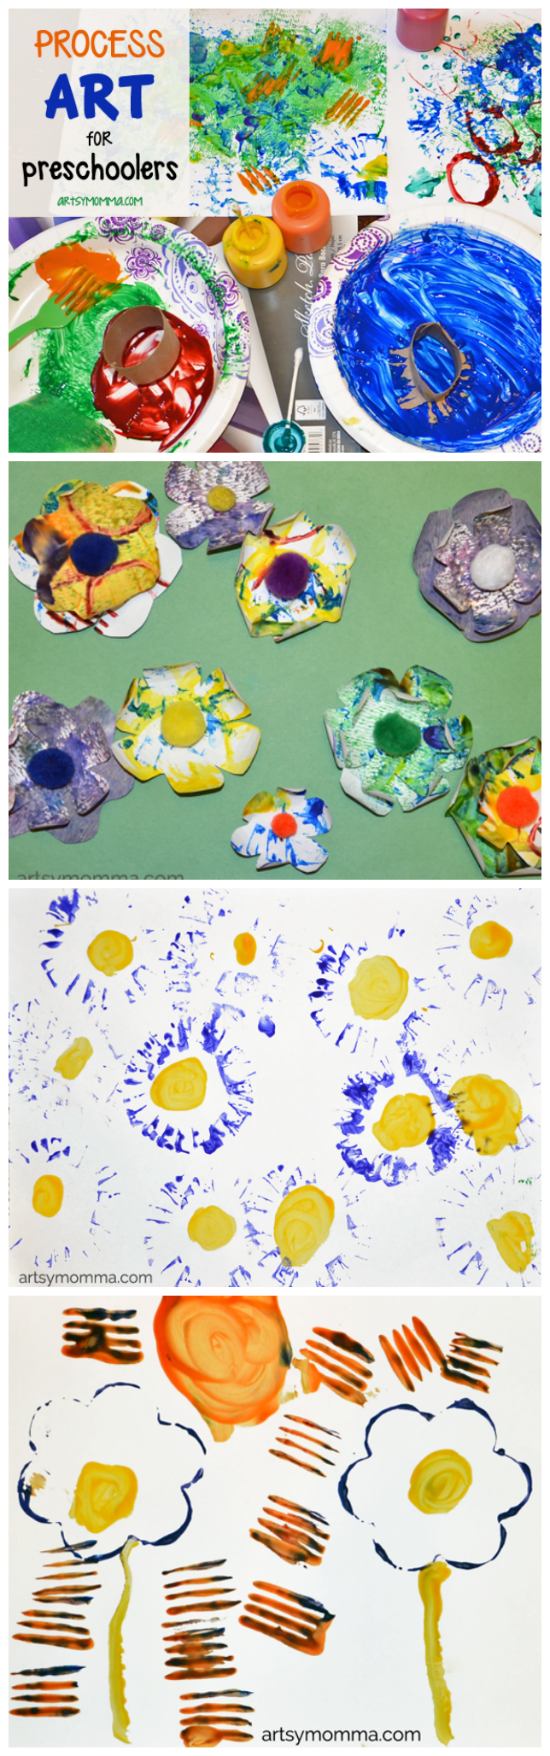 Flower Theme for Preschoolers - Process Art